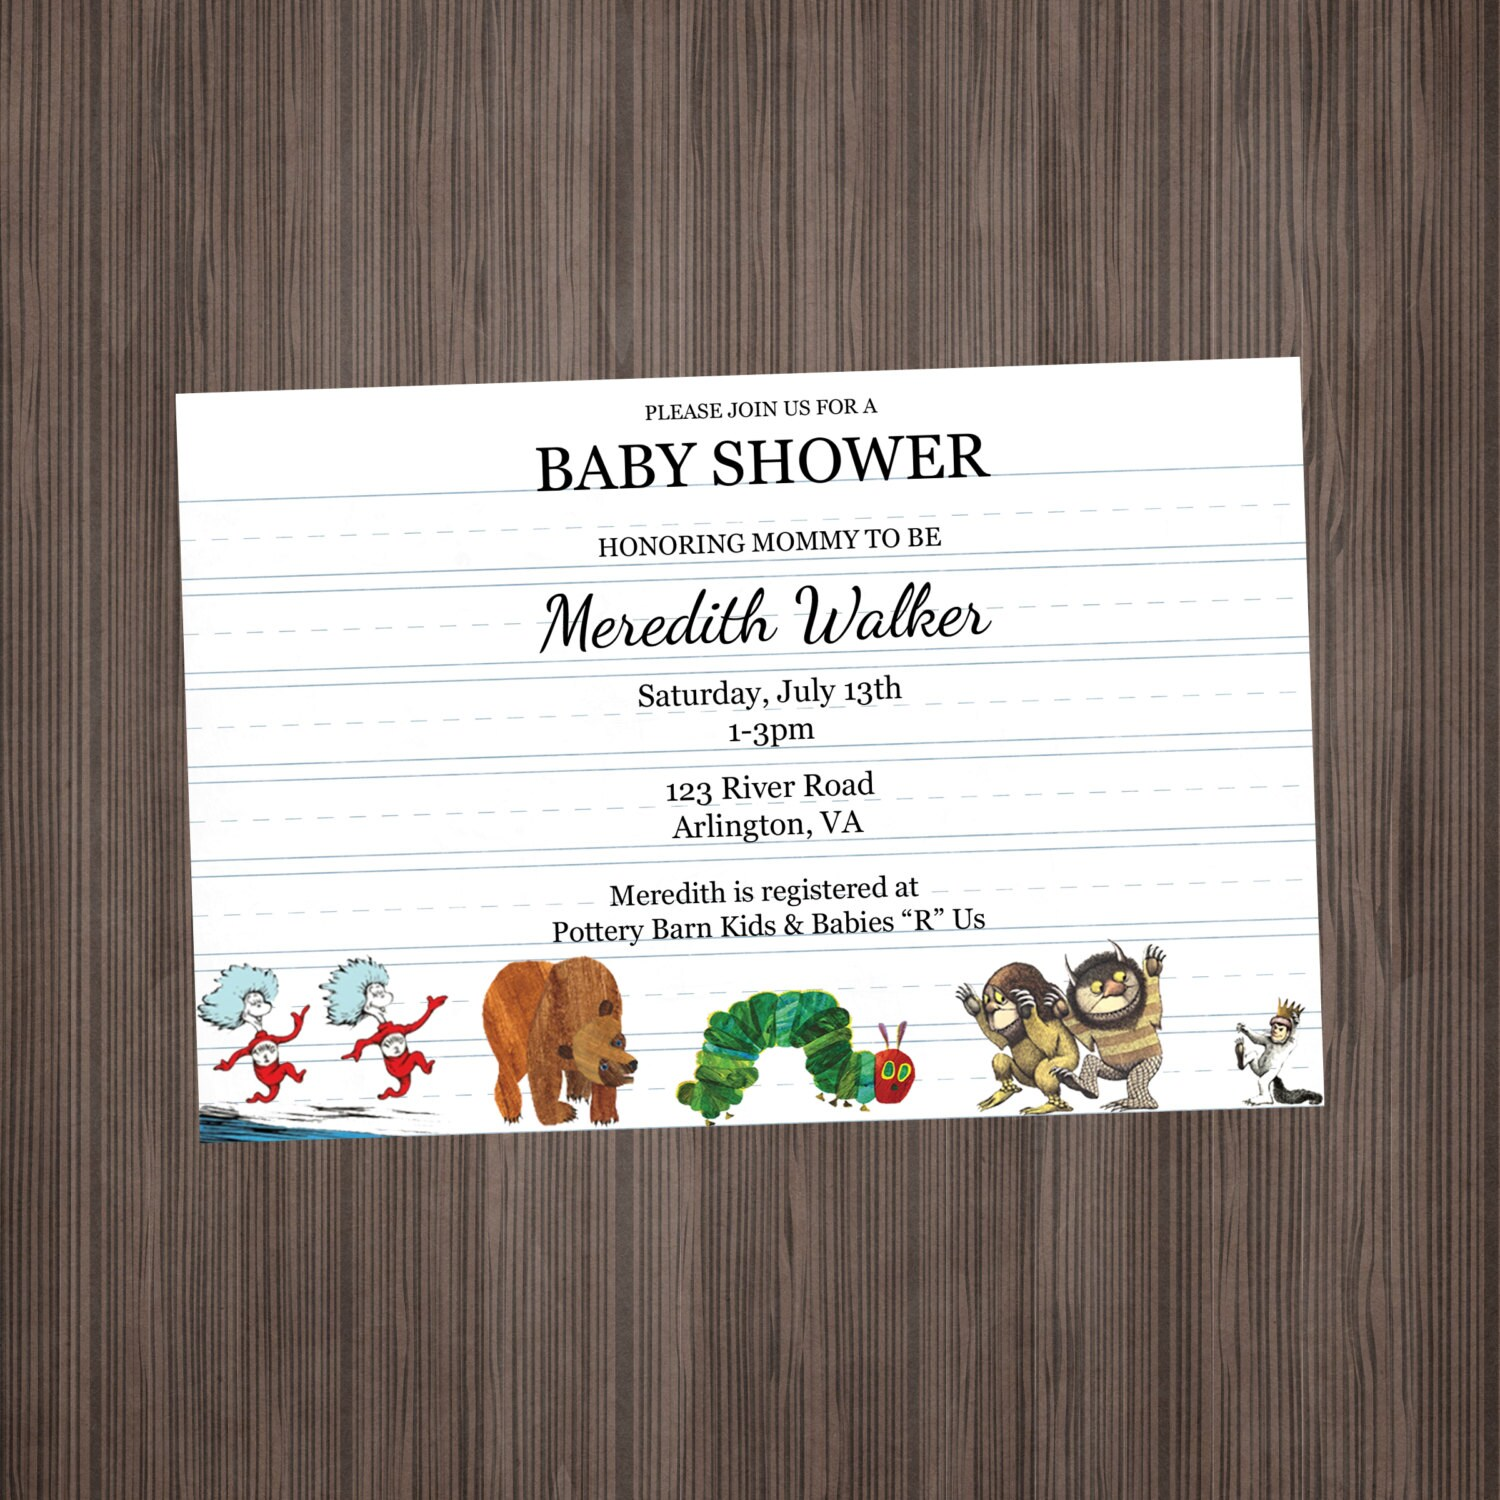 storybook themed baby shower invitation wording 2 - 28 images ...